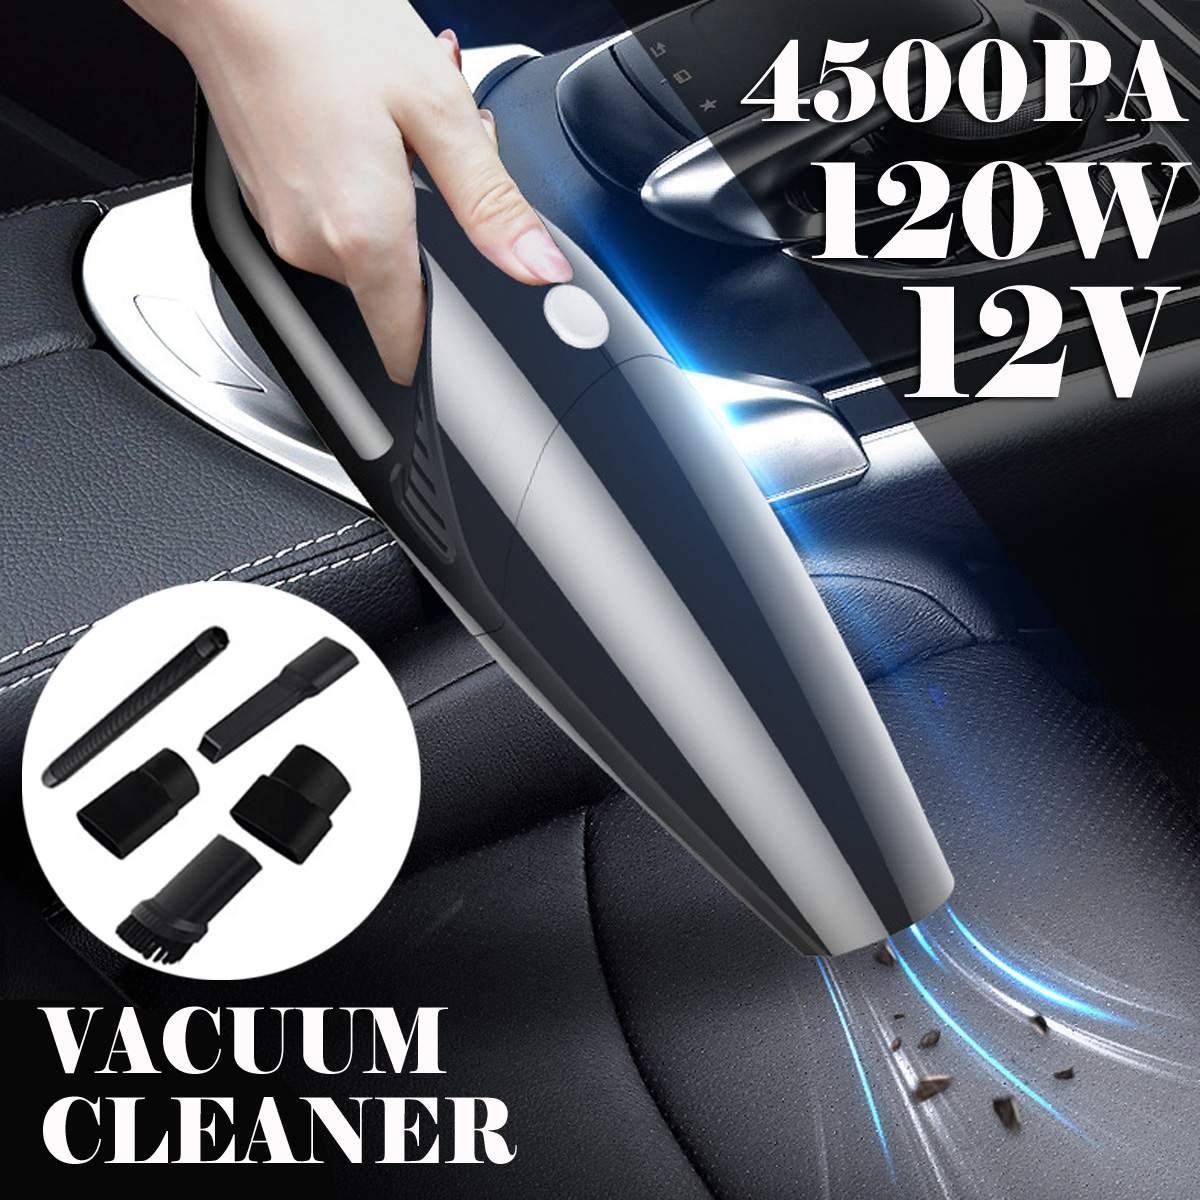 4500Pa 120W Cordless Corded Hand Held Vacuum Cleaner Strong Power Vacume Cleaner Mini Portable For Car Auto Home